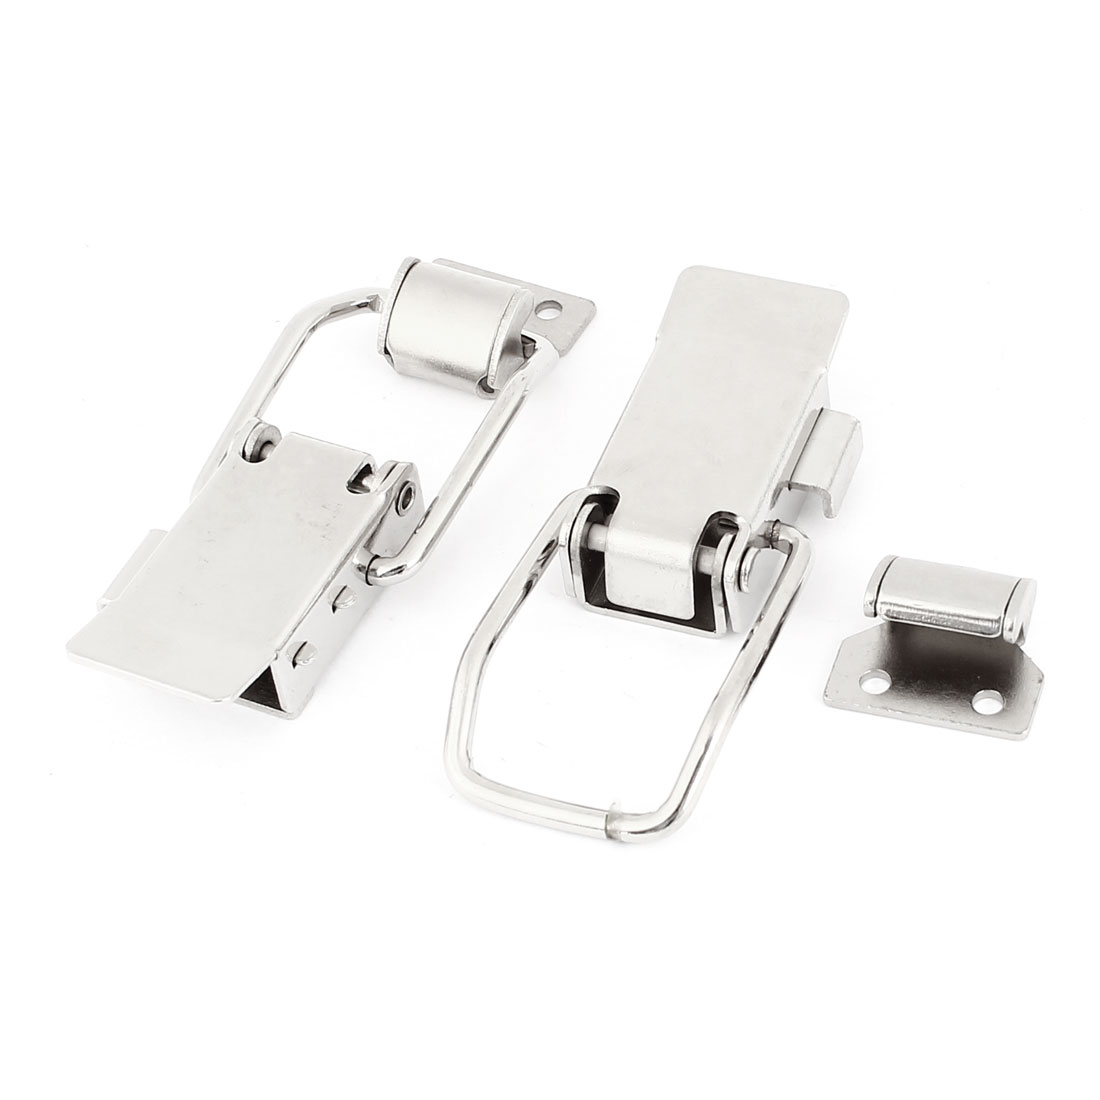 2 Sets Push Open Spring Loaded Lock Silver Tone Toggle Latch Catch